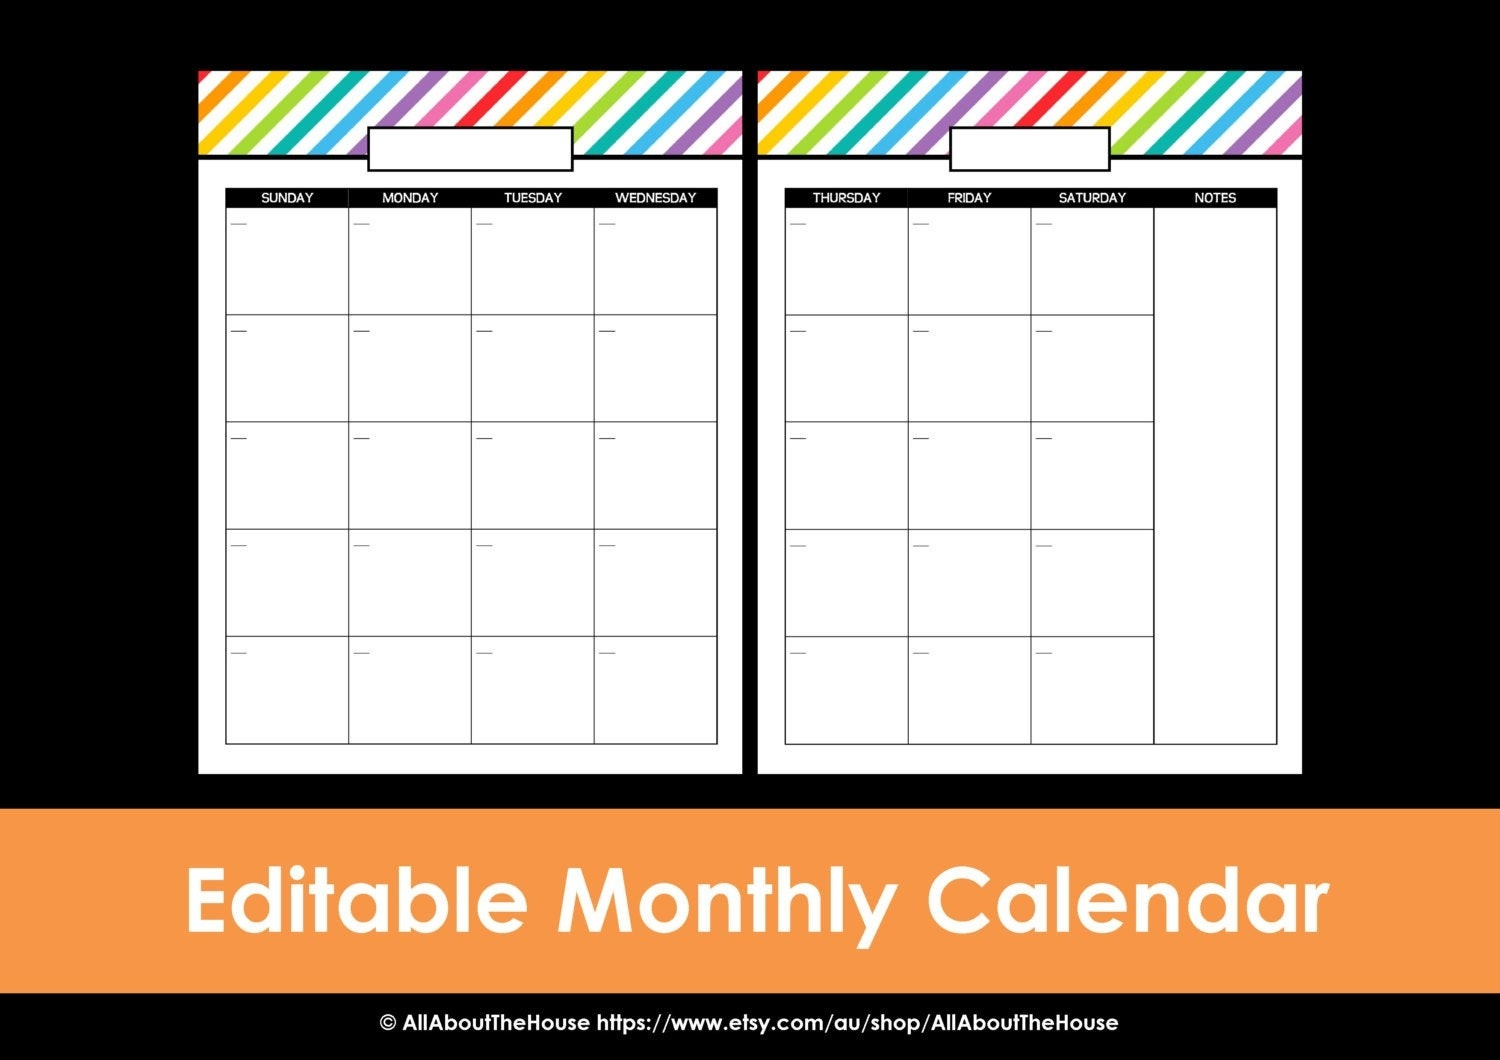 Printable Calendar 2 Page Monthly Calendar Printable Rainbow Perpetual  Editable Pdf Household Binder Planner 2016 2017 Daily Letter Organize-Printable Blank Monthly Calendar 2 Pages